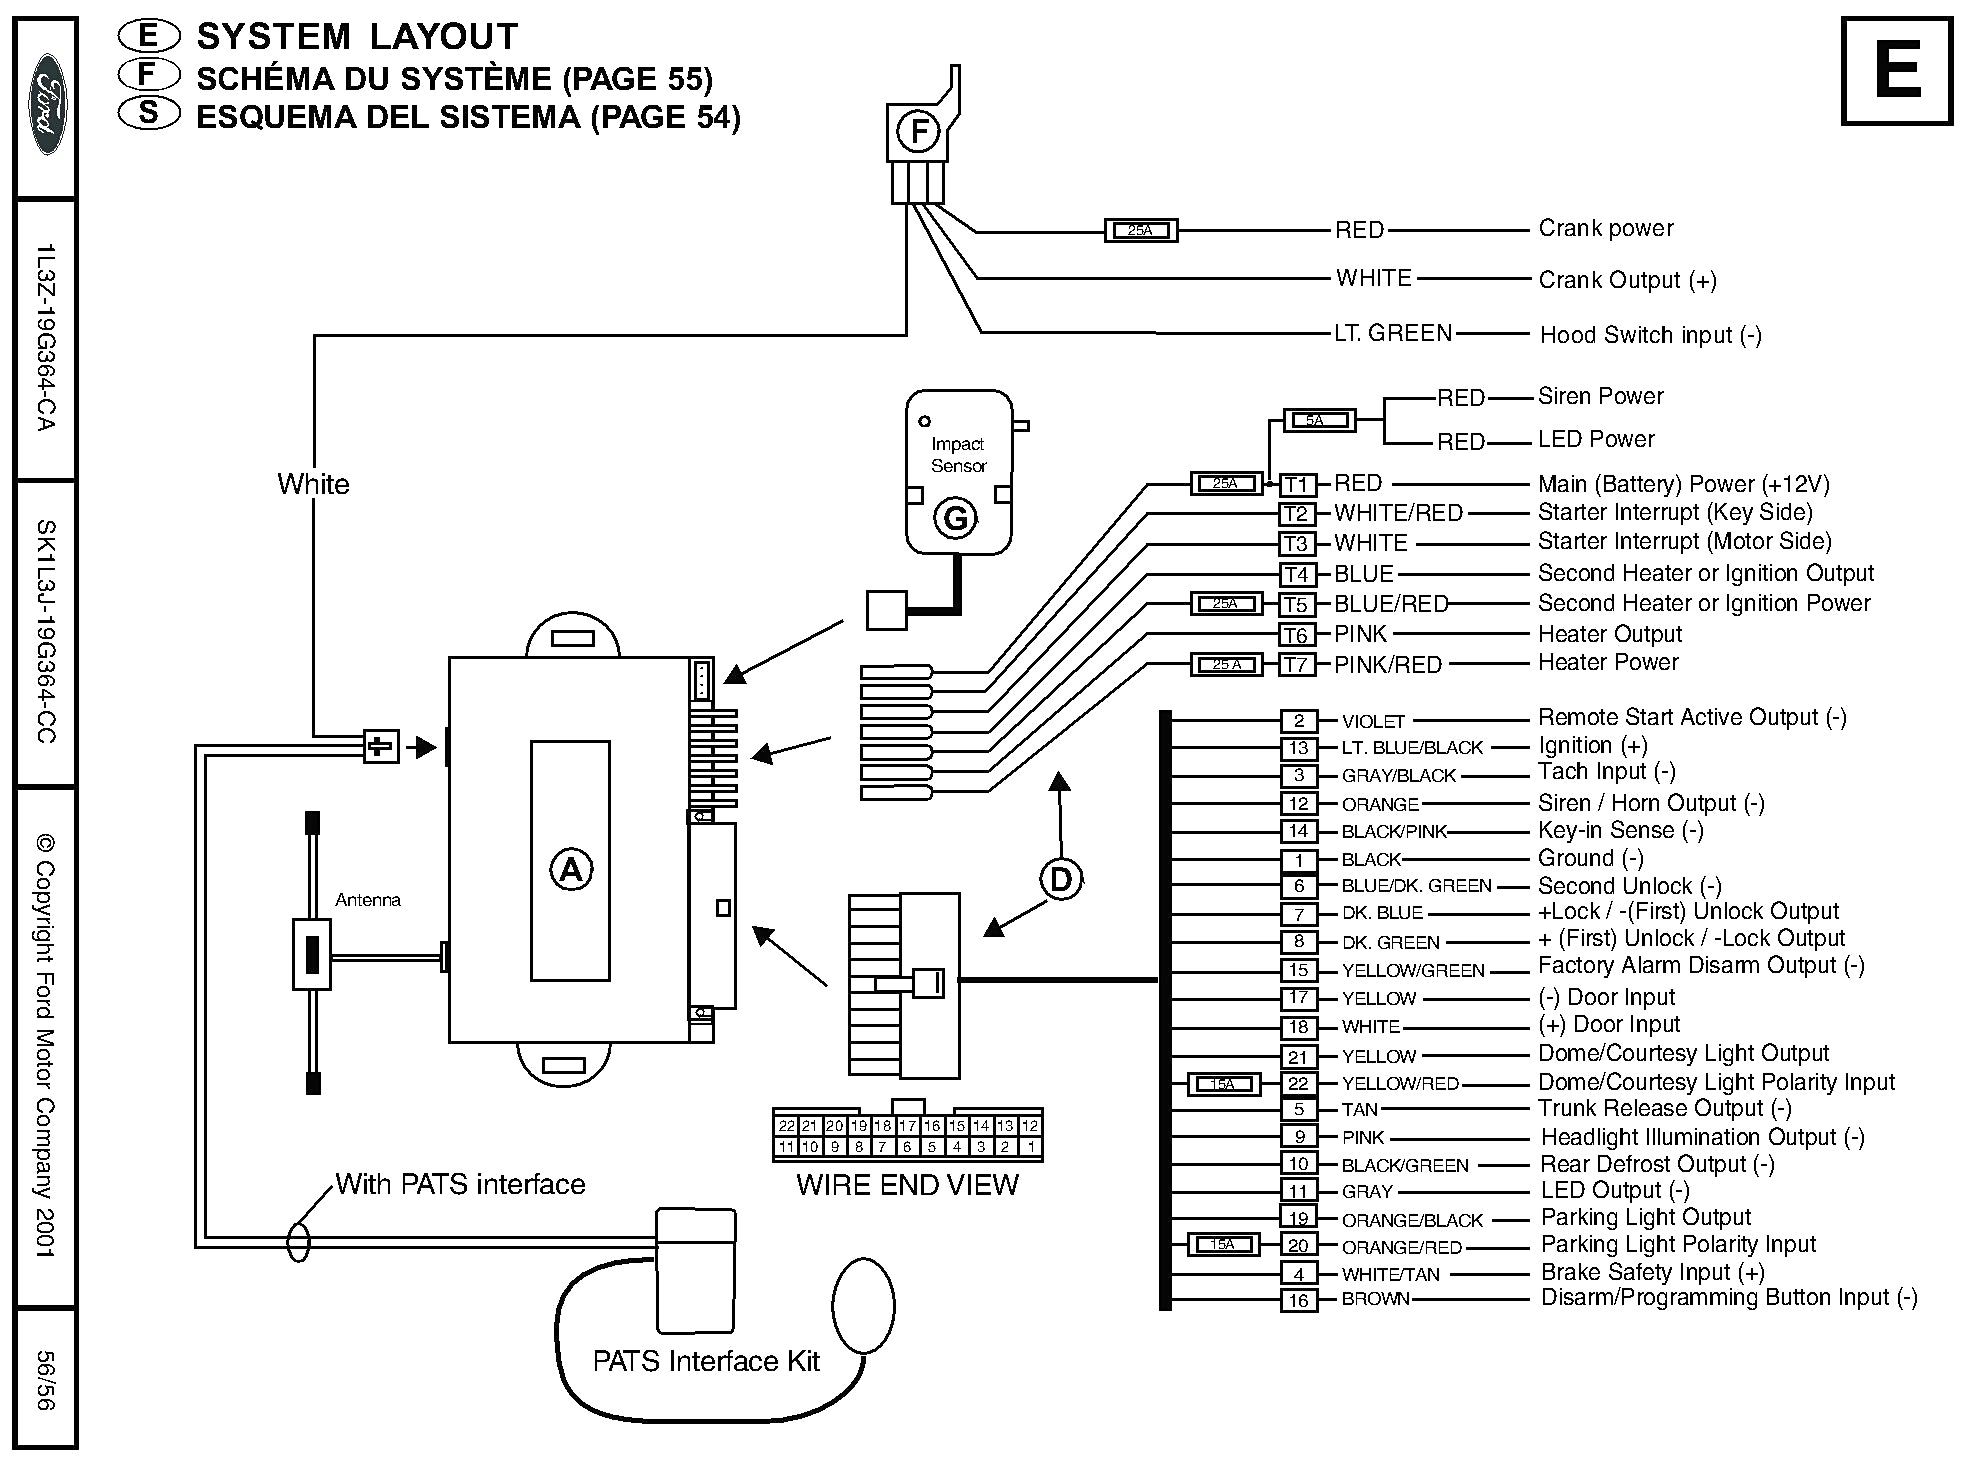 Remote Starter Wiring Diagram 99 Chevy Malibu Online For 1999 Honda Accord Library Camaro Start